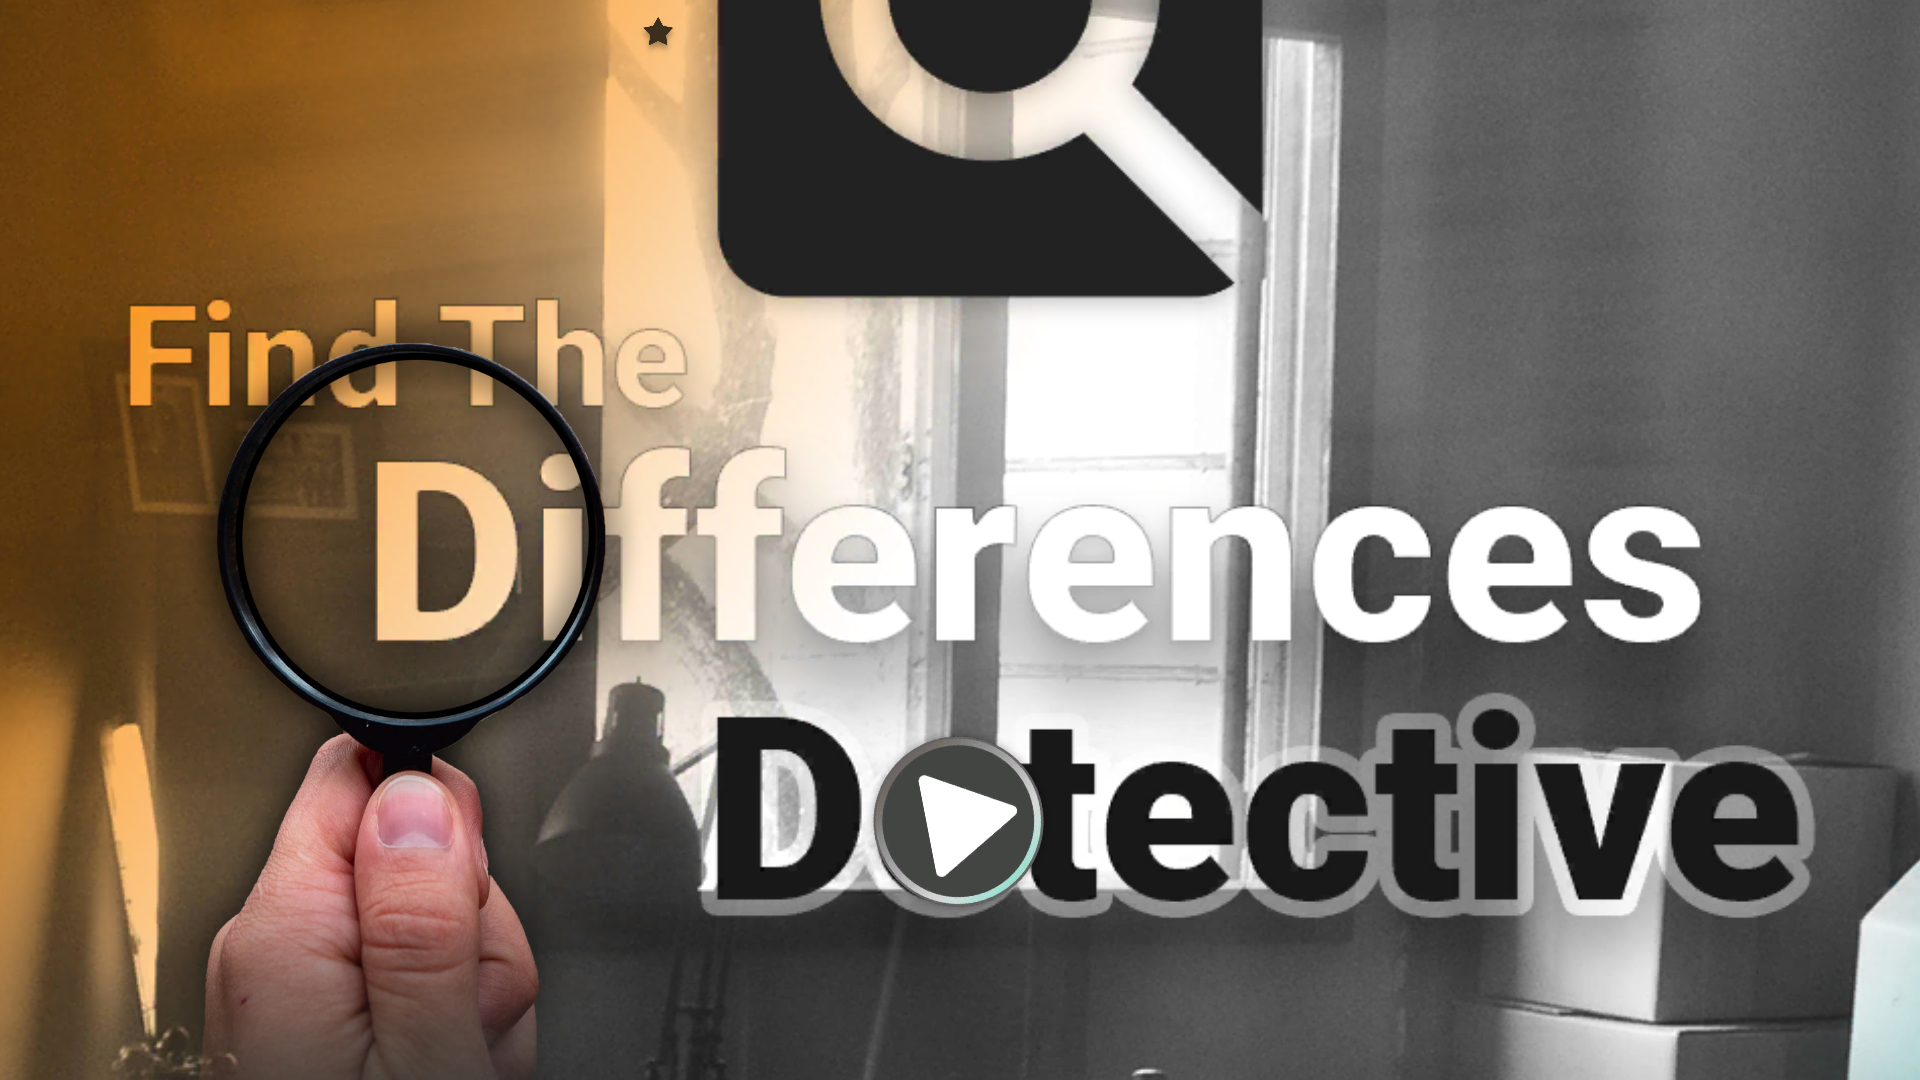 Find The Differences Detective Giveaway